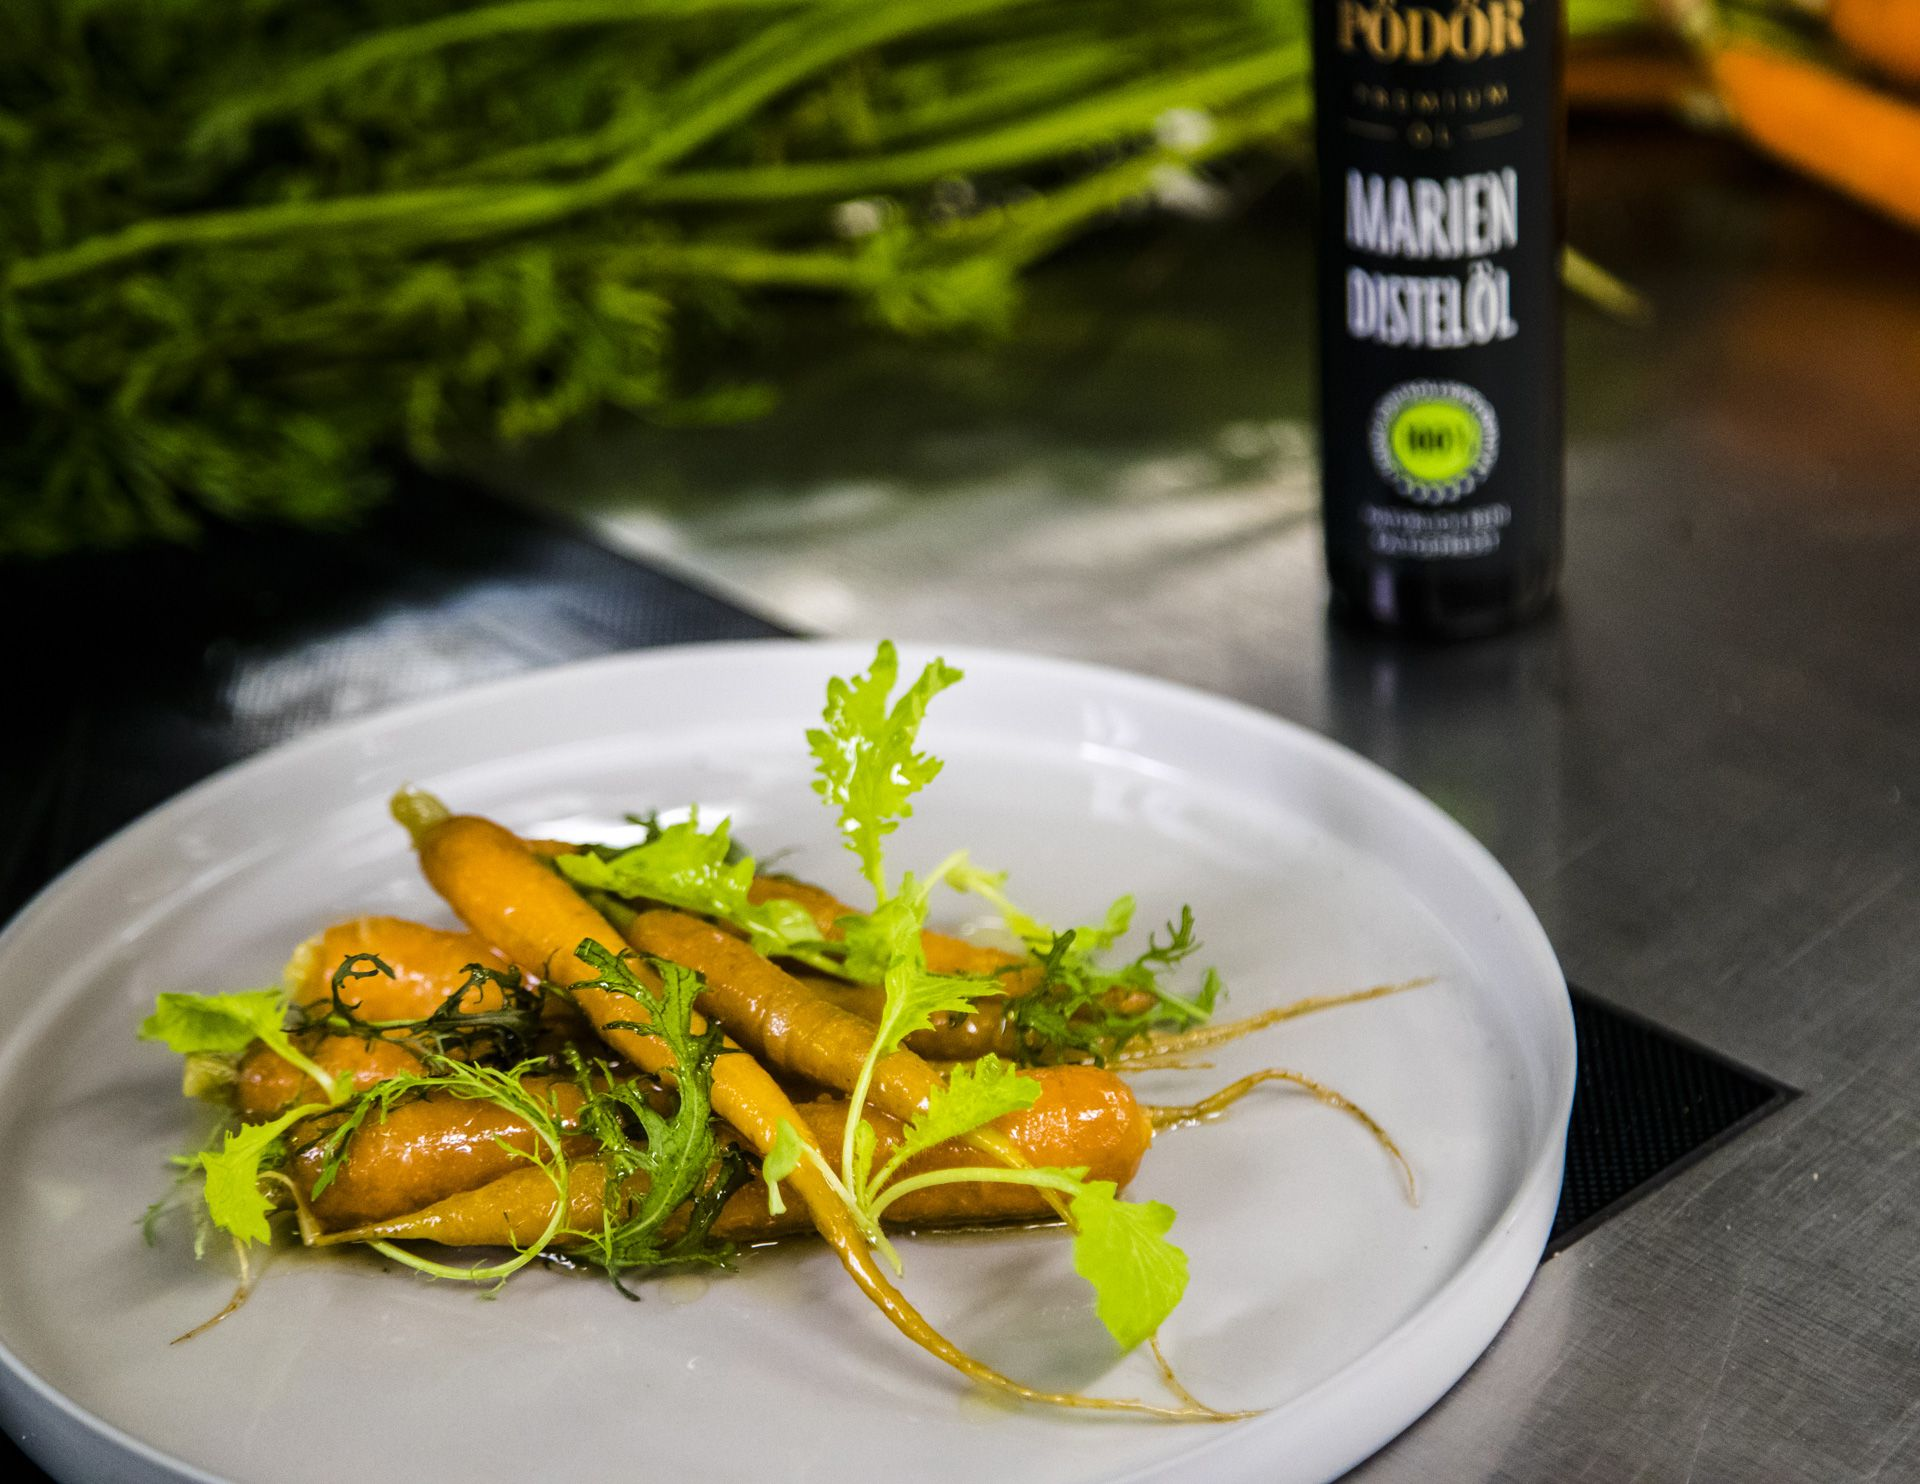 Thomas Bühner is enthusiastic about Pödör thistle oil. He likes to use it as an alternative to olive oil and combines it with sweet vegetables such as carrots.